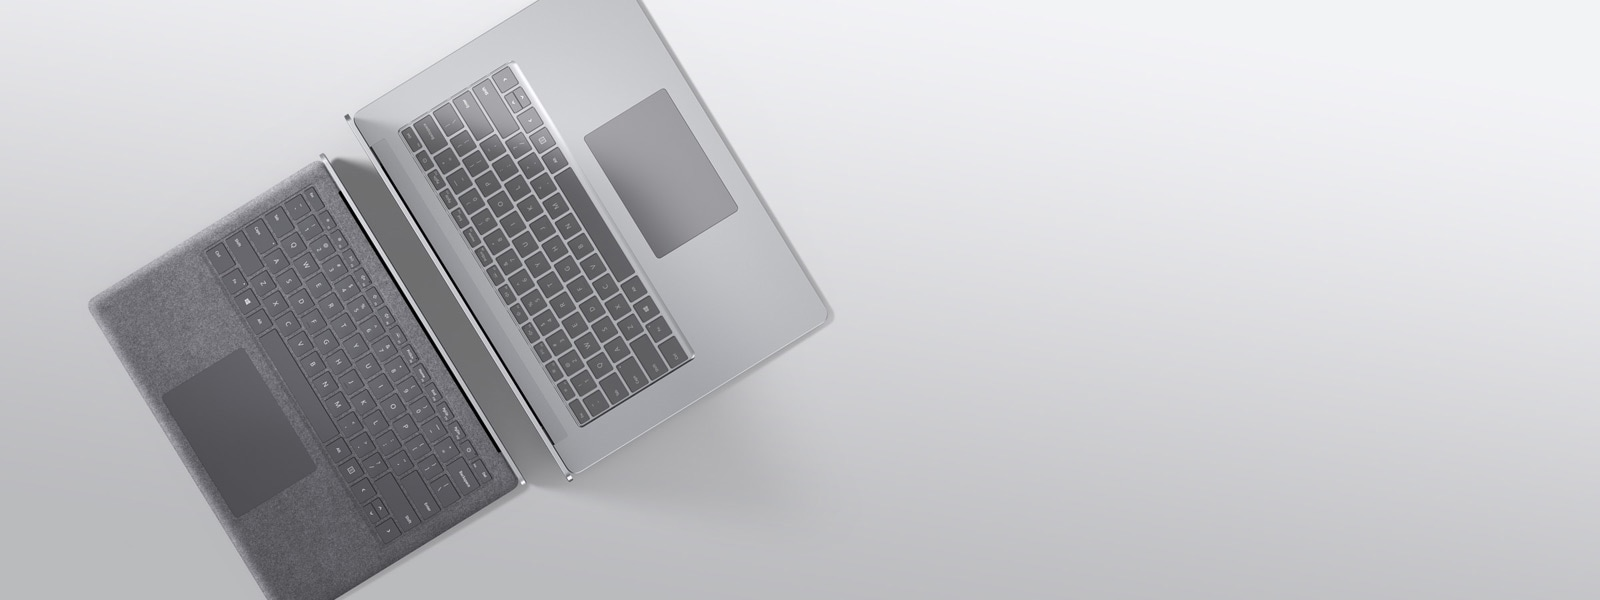 13.5-inch Surface Laptop 3 in Platinum Alcantara and 15-inch Surface Laptop 3 in Platinum metal finish as seen from above